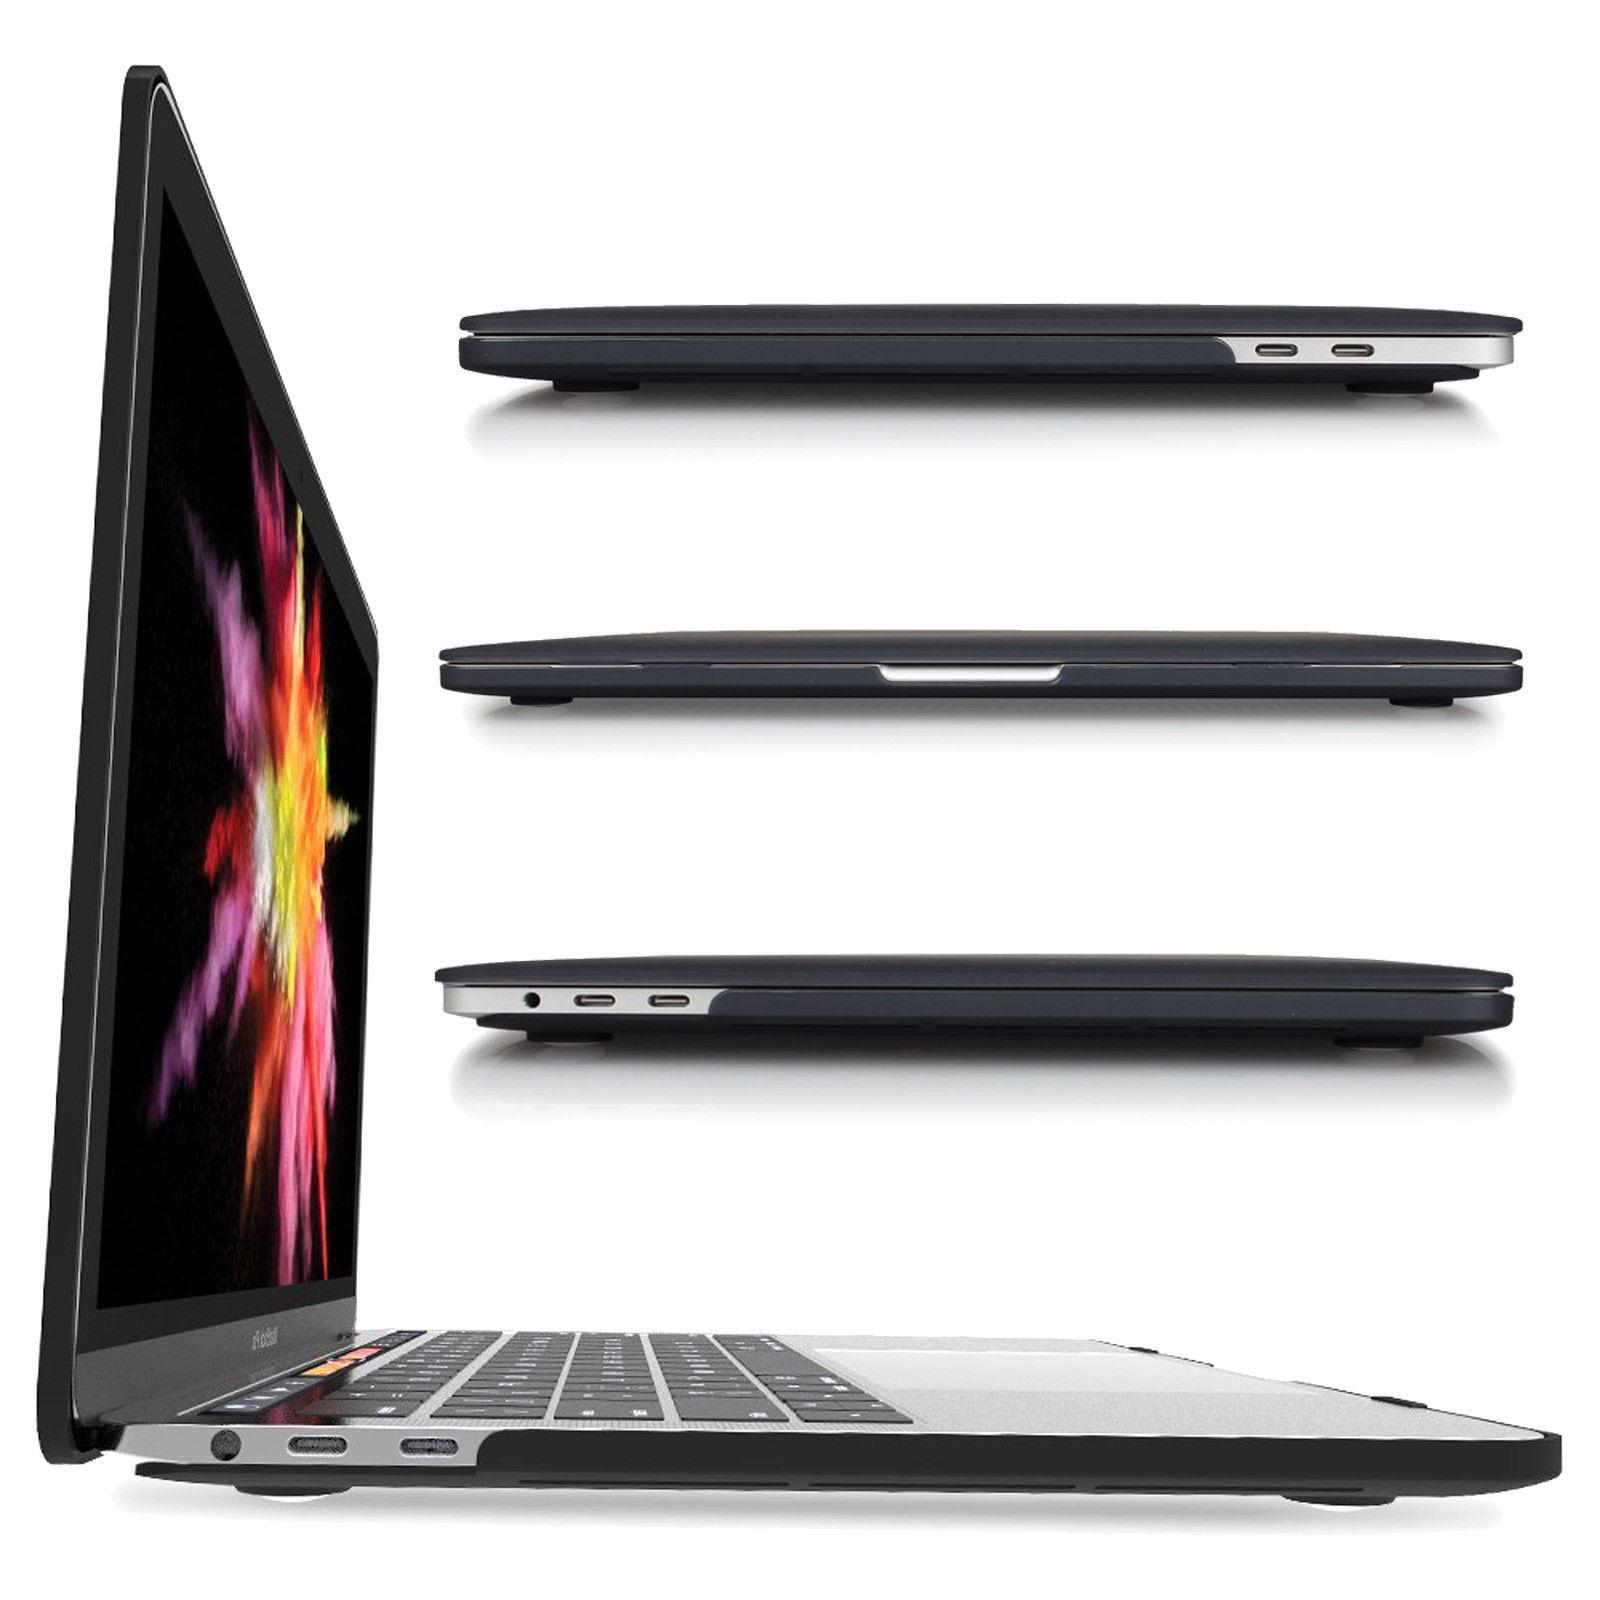 Laptop For MacBook Pro 15